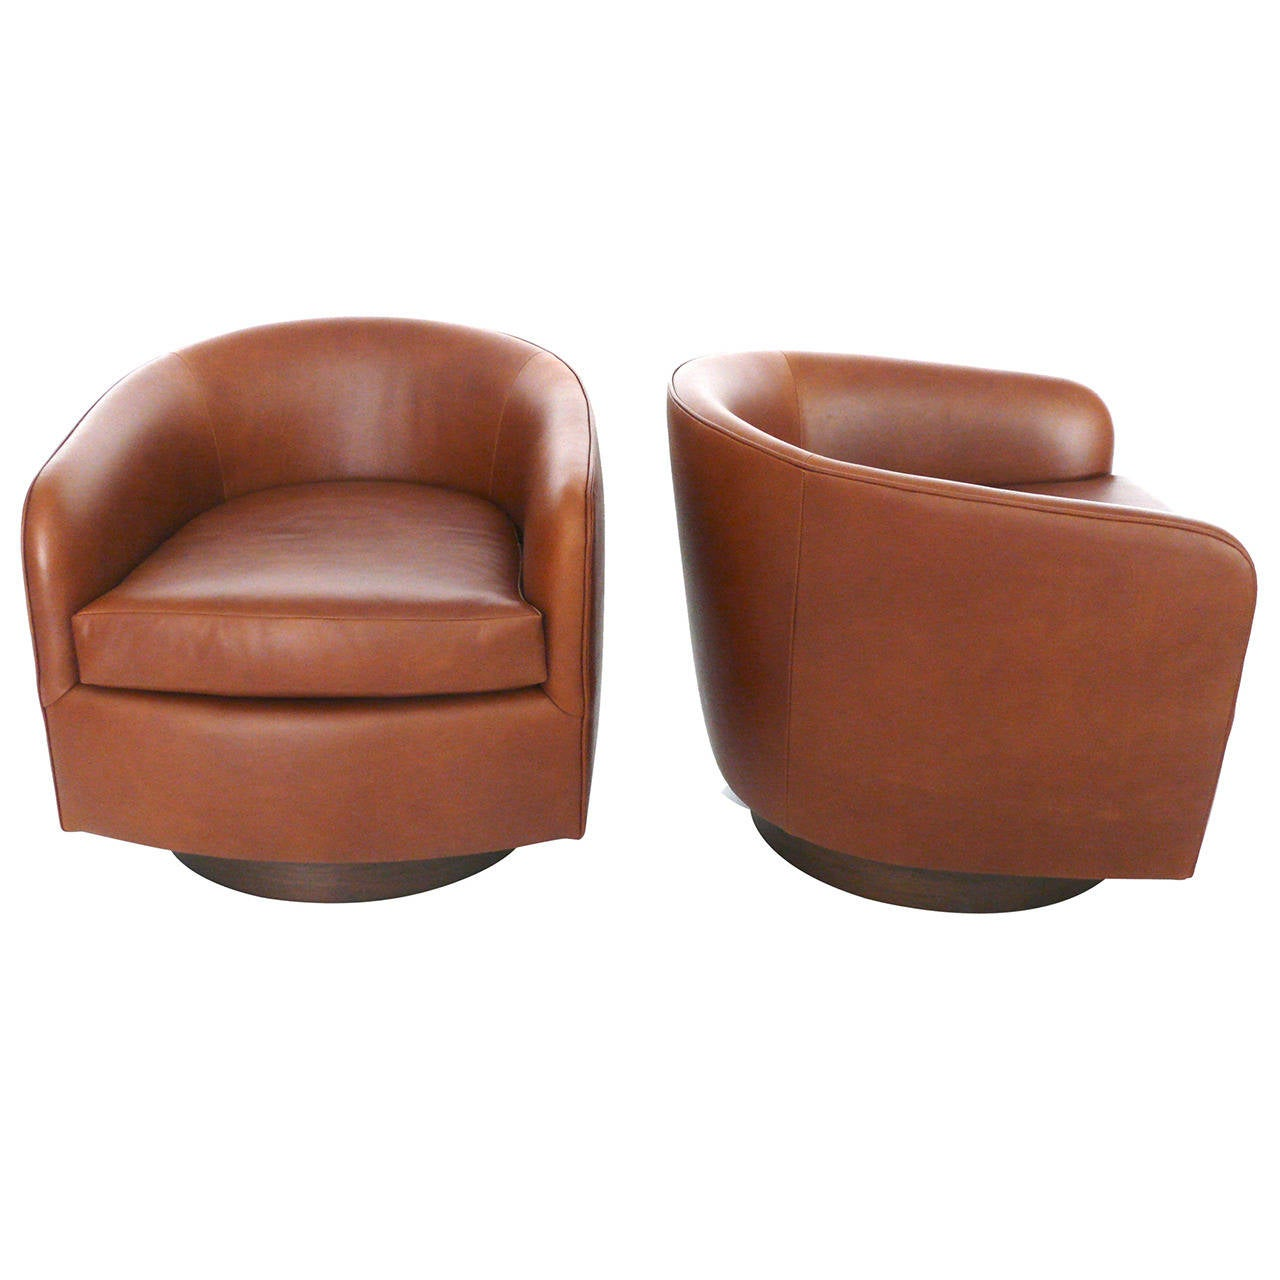 Superb Saddle Leather Swivel Chairs In The Style Of Milo Baughman Caraccident5 Cool Chair Designs And Ideas Caraccident5Info